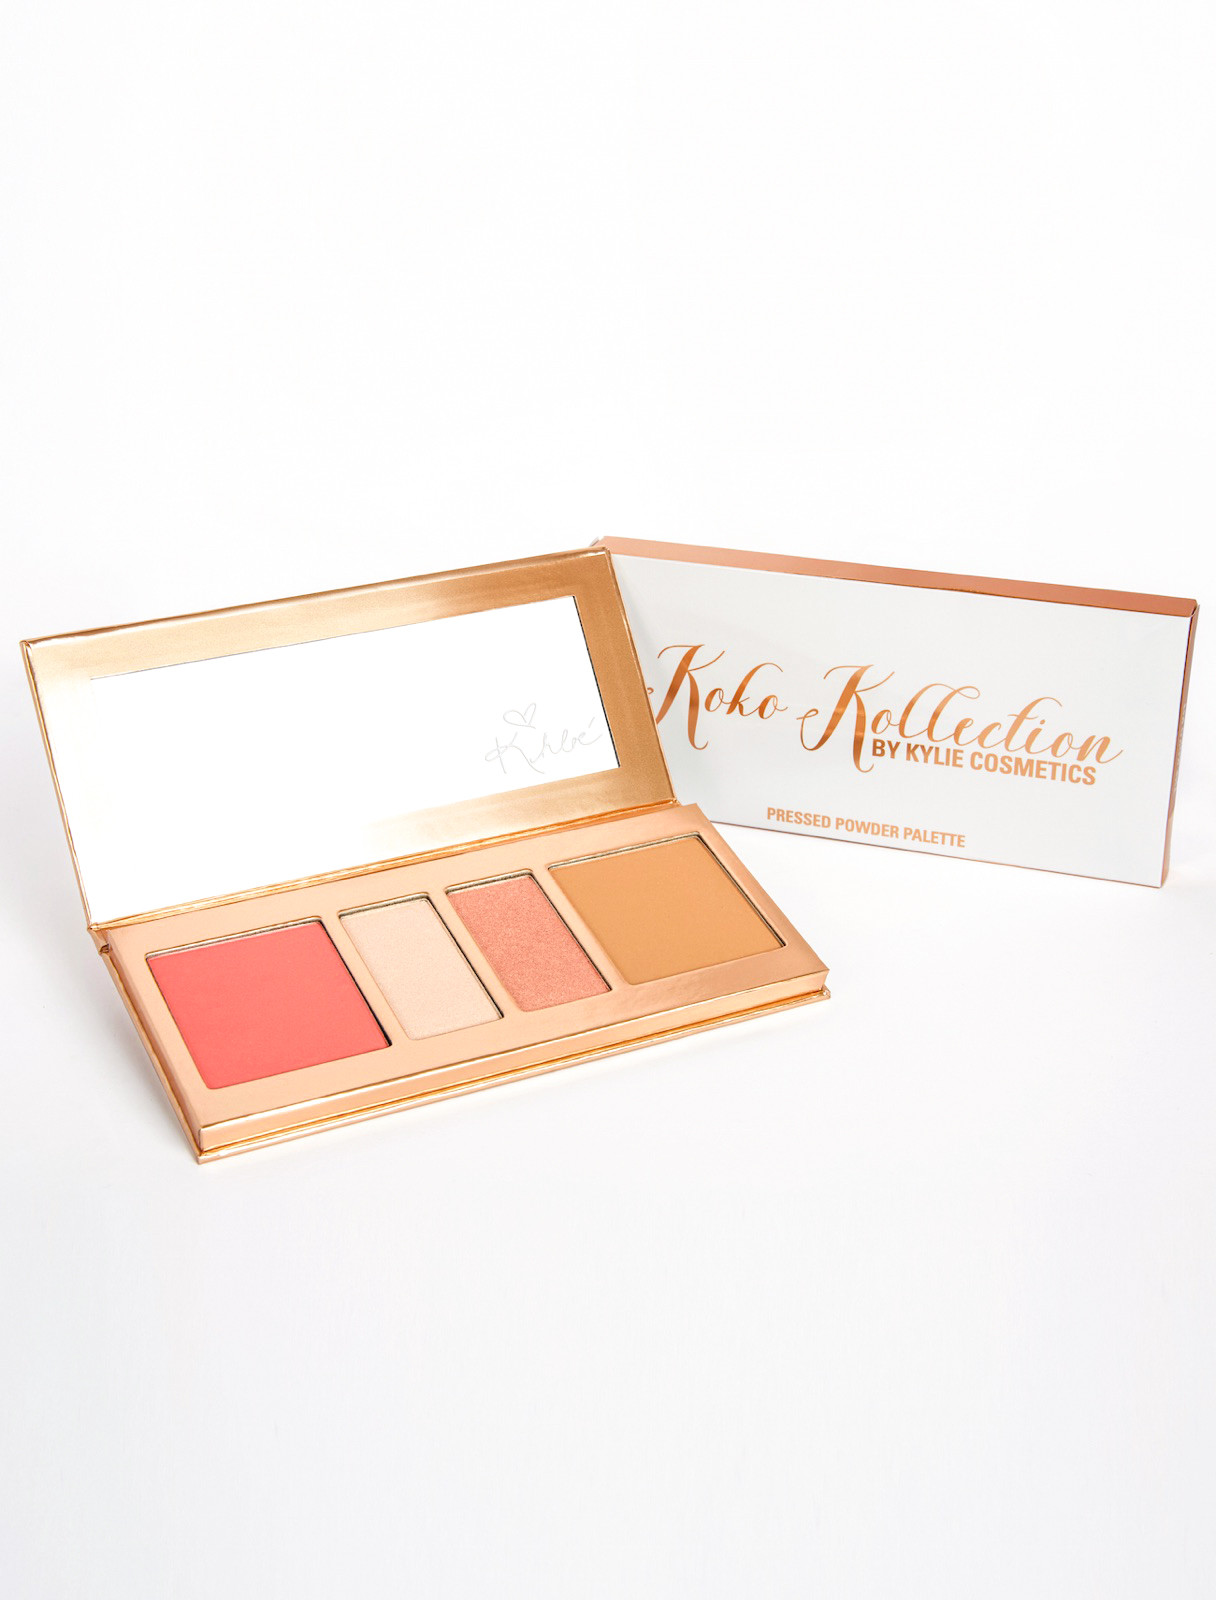 Kylie Cosmetics℠ By Kylie Jenner Koko Kollection Face Palette